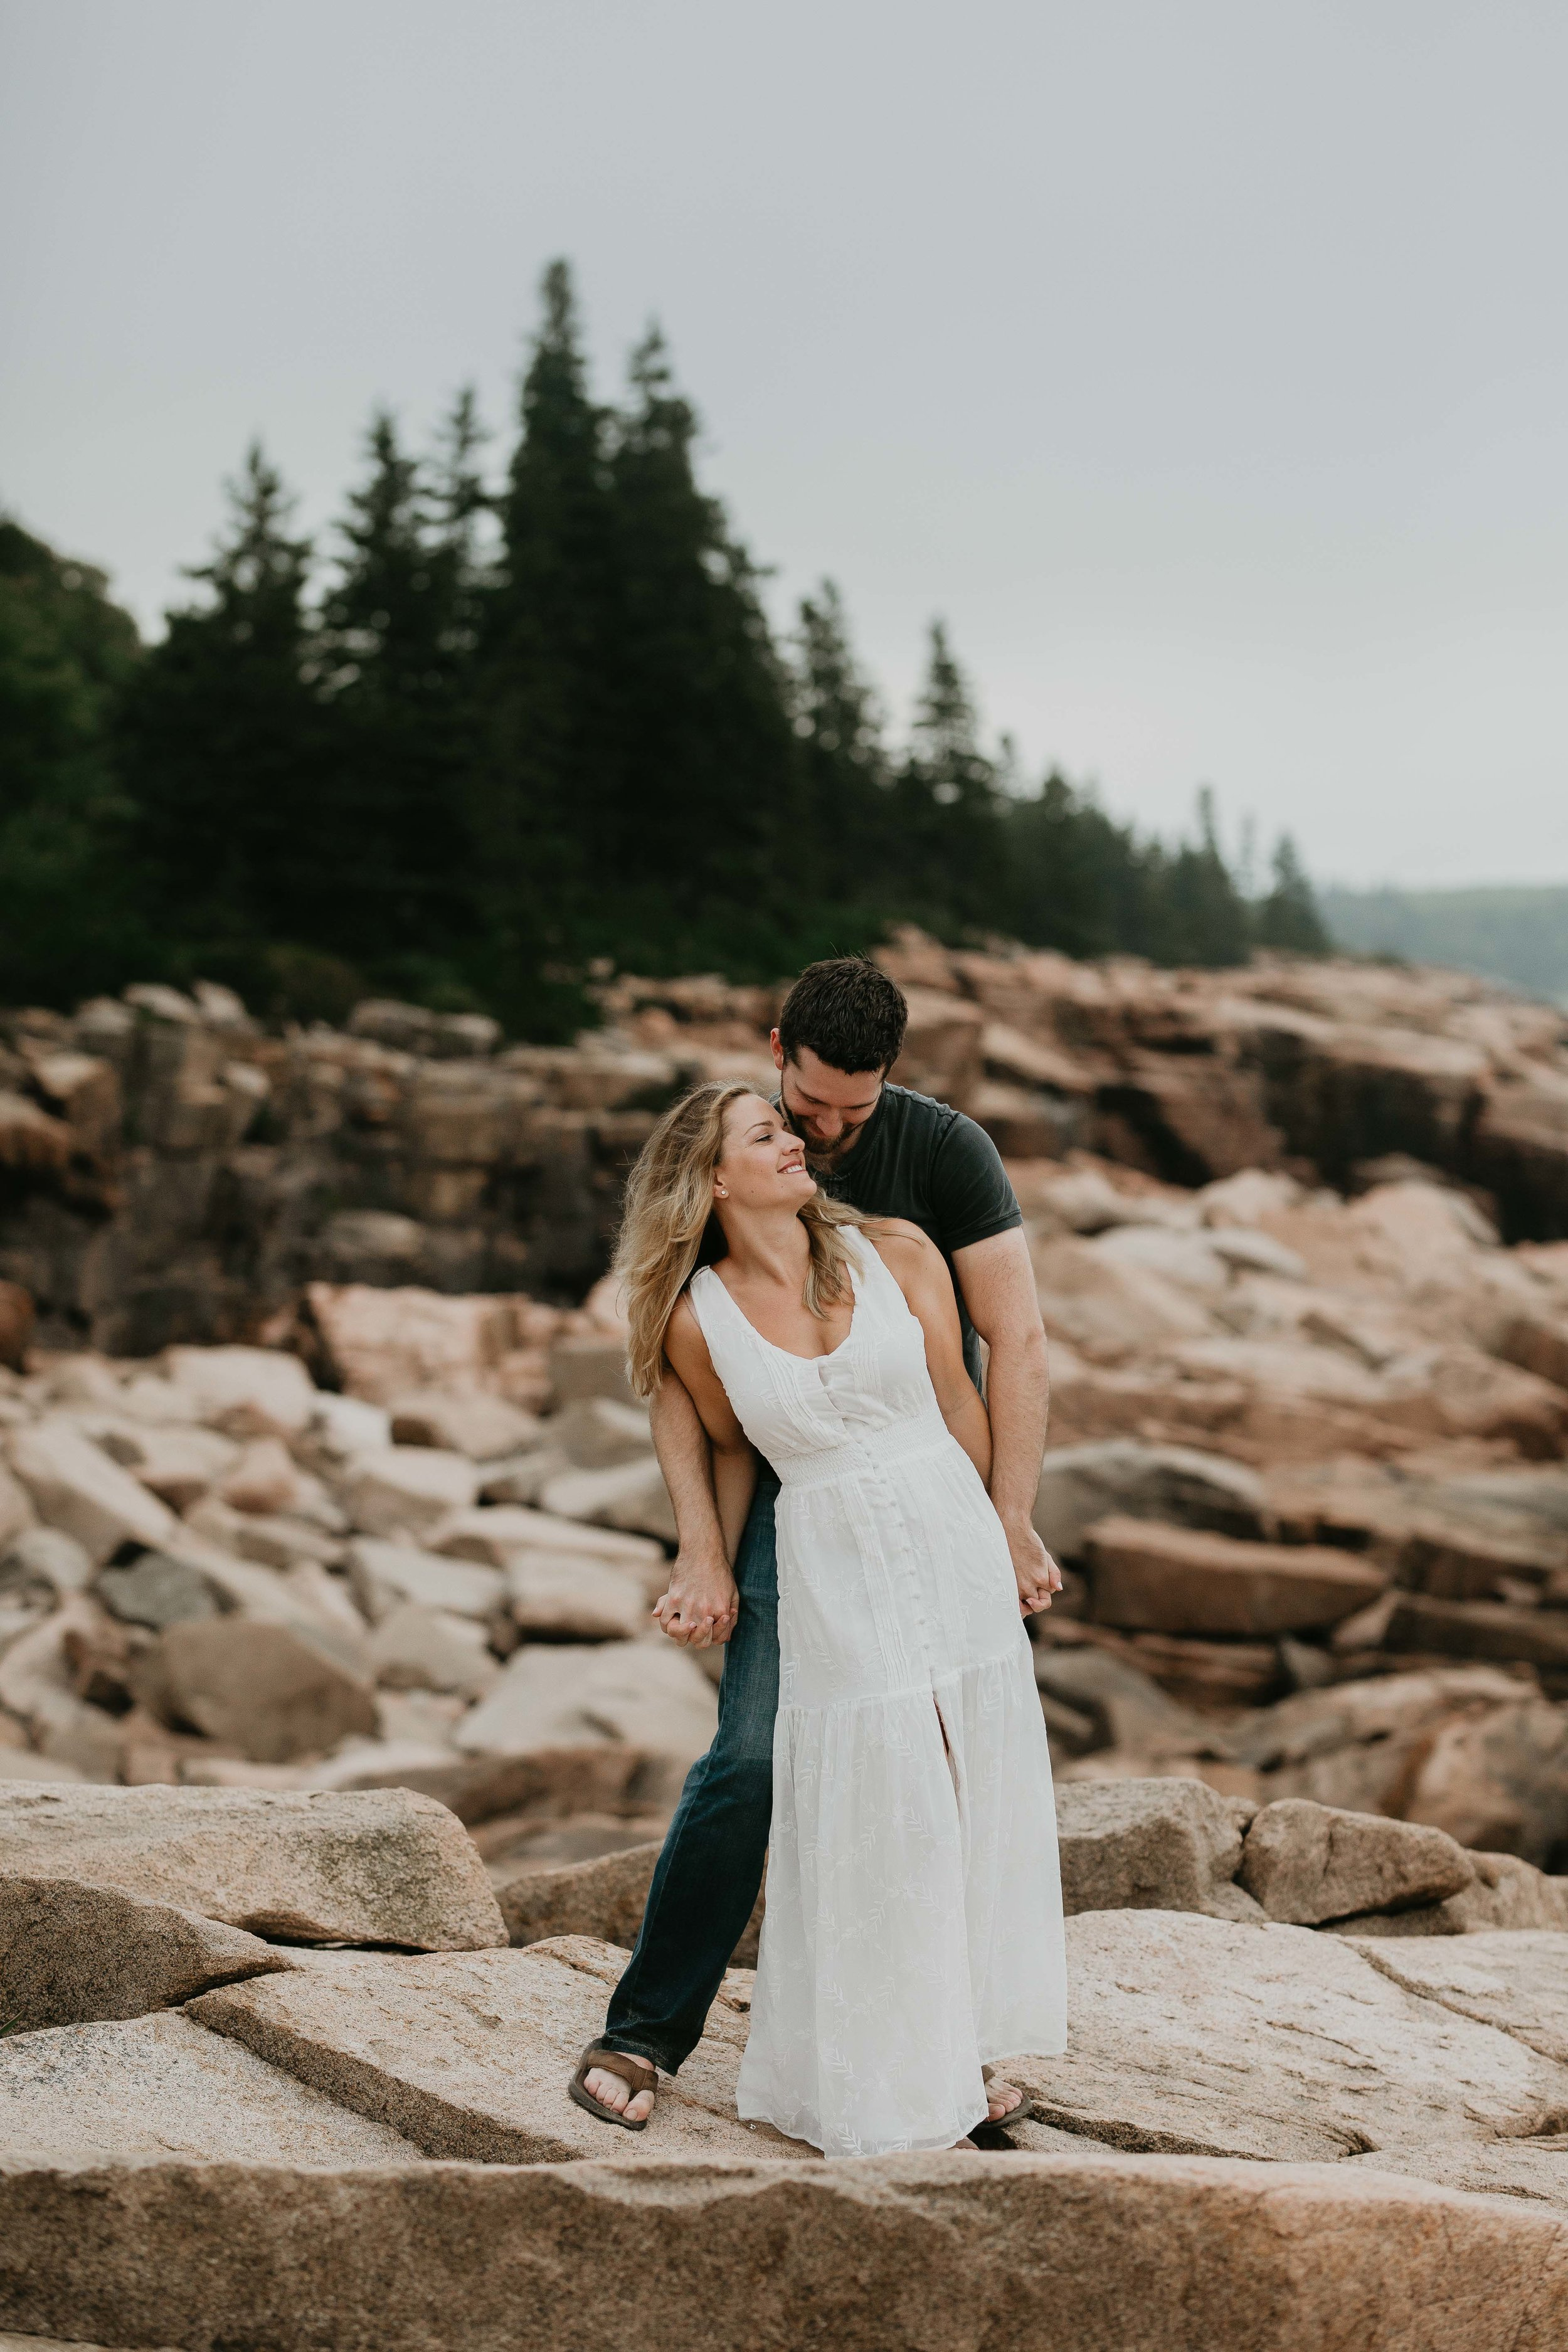 nicole-daacke-photography-acadia-national-park-adventurous-engagement-session-photos-otter-cliffs-forests-coastline-sand-beach-adventure-session-bar-harbor-mt-desert-island-elopement-fall-bass-harbor-lighthouse-wedding-maine-landscape-photographer-20.jpg